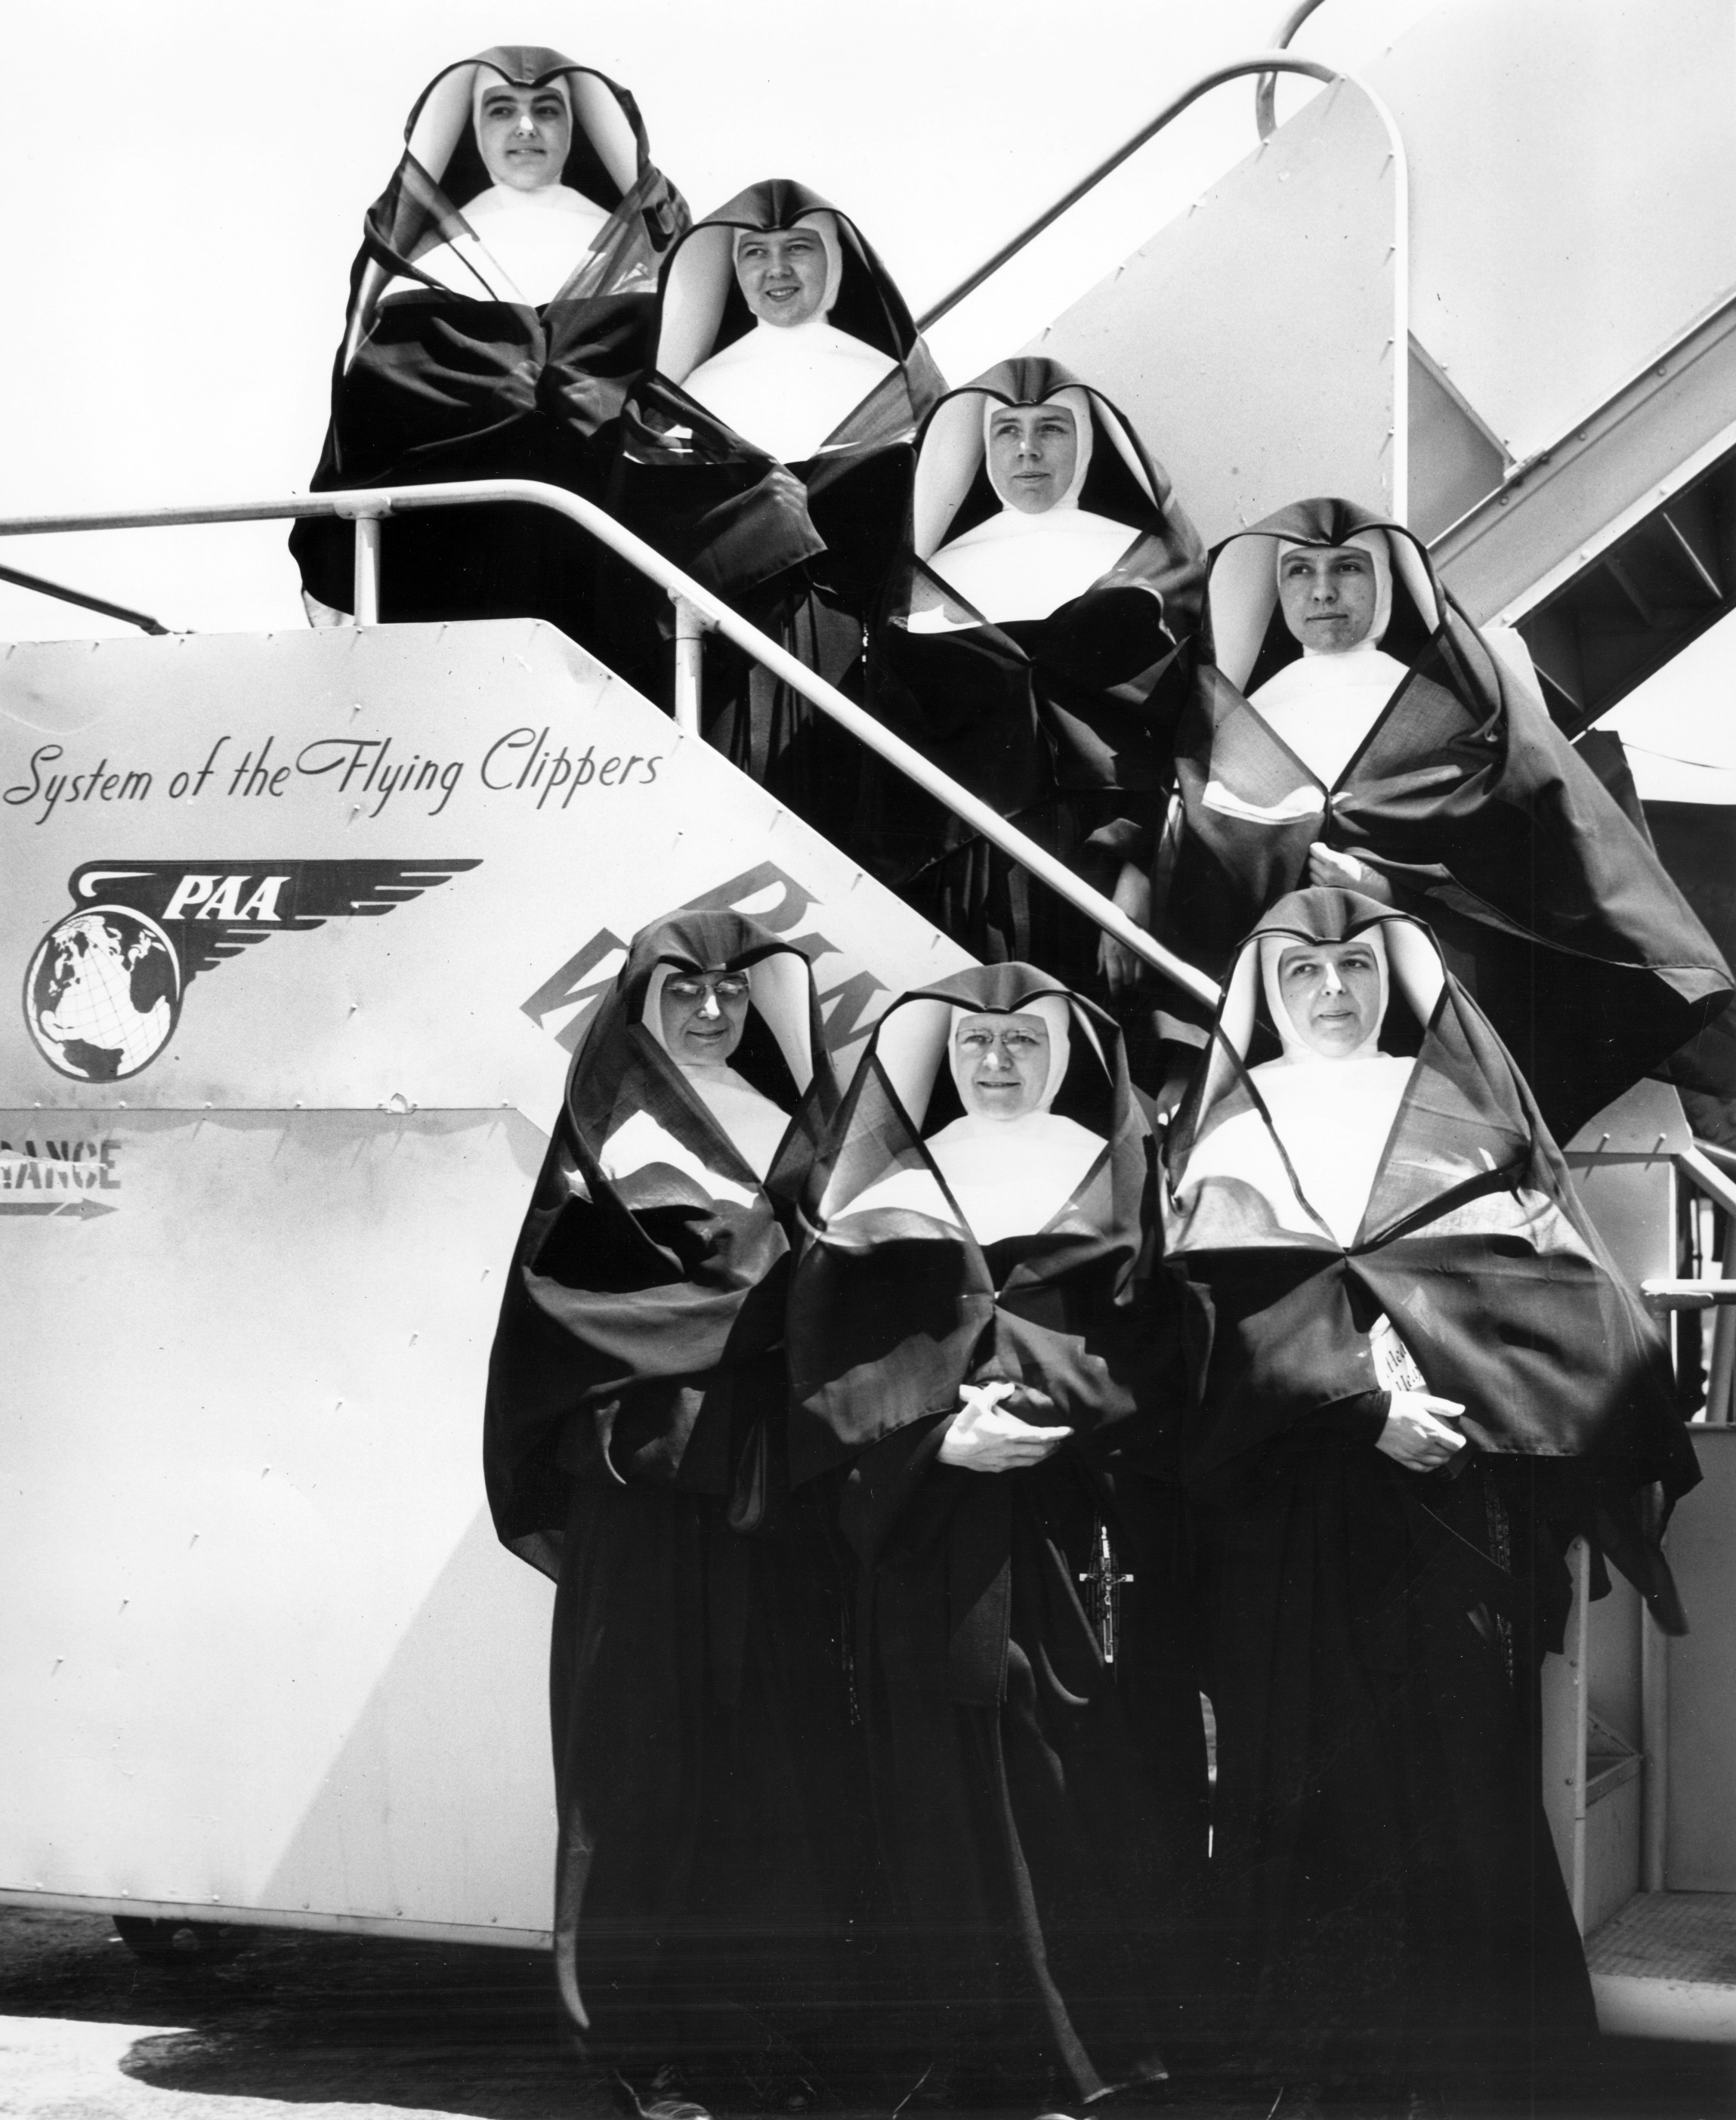 Sisters from Milwaukee leaving for Guam in 1949 are from top down: Sisters Mary Jean Francis Stenger, Aquina Curtin, Ardwin Shaw, Marie Jose Herbig, Carleen Roberts, Eric Militzer, Eucharita Luxem (First Superior).